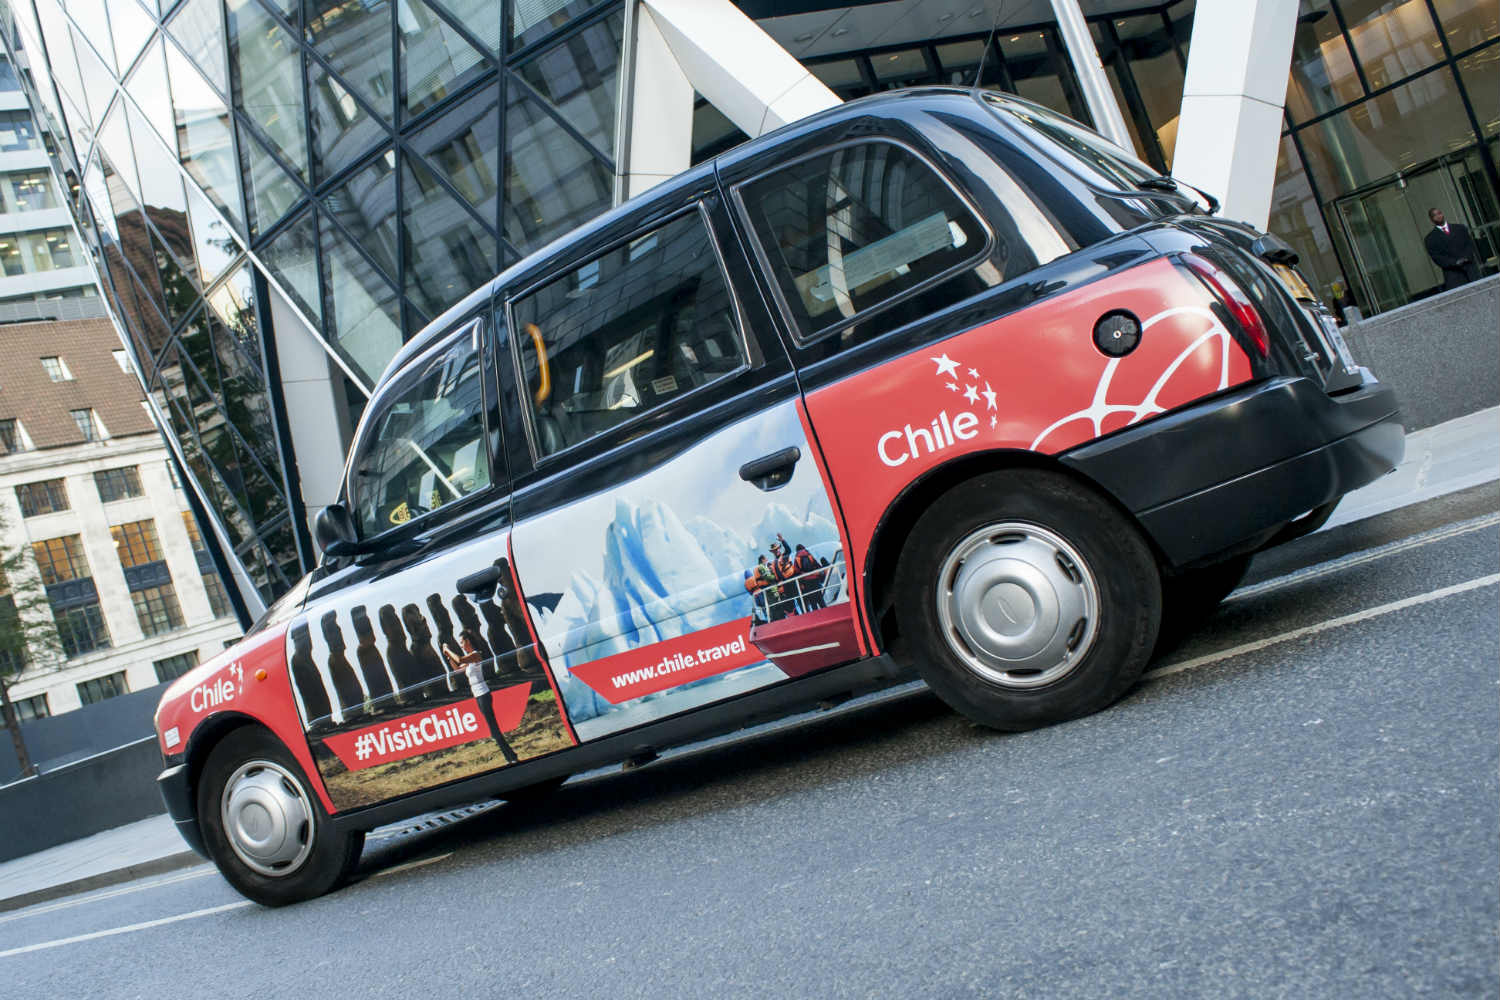 visit chile taxi advertising campaign in london